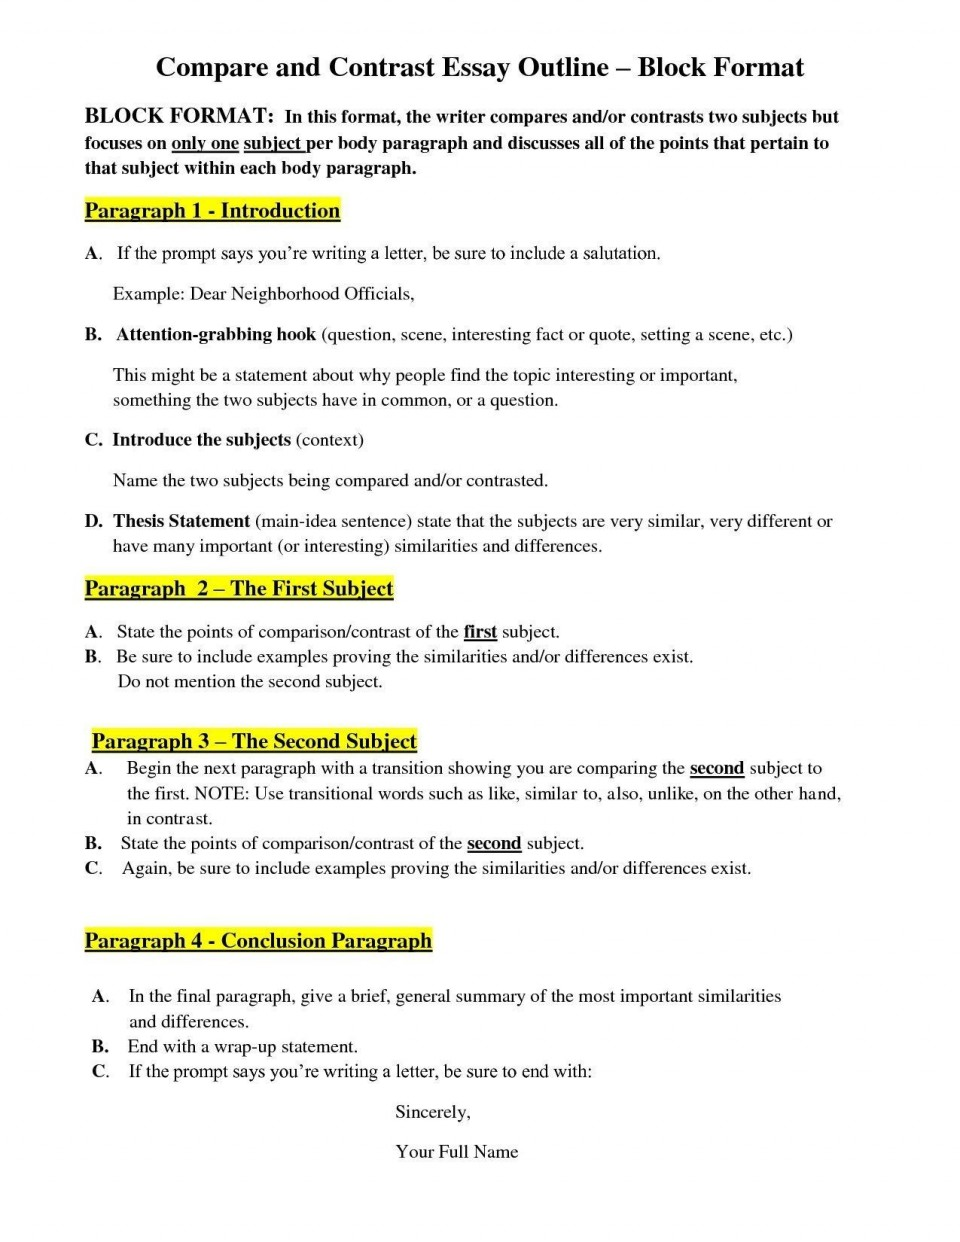 014 Essay Examplempare Andntrastmparison Best Examples Of Scenario In 6th Grade An Goo 3rd Food 5th Middle School Block Format Pdf High 4th Vs Striking Compare And Contrast Example Outline For 8th 960